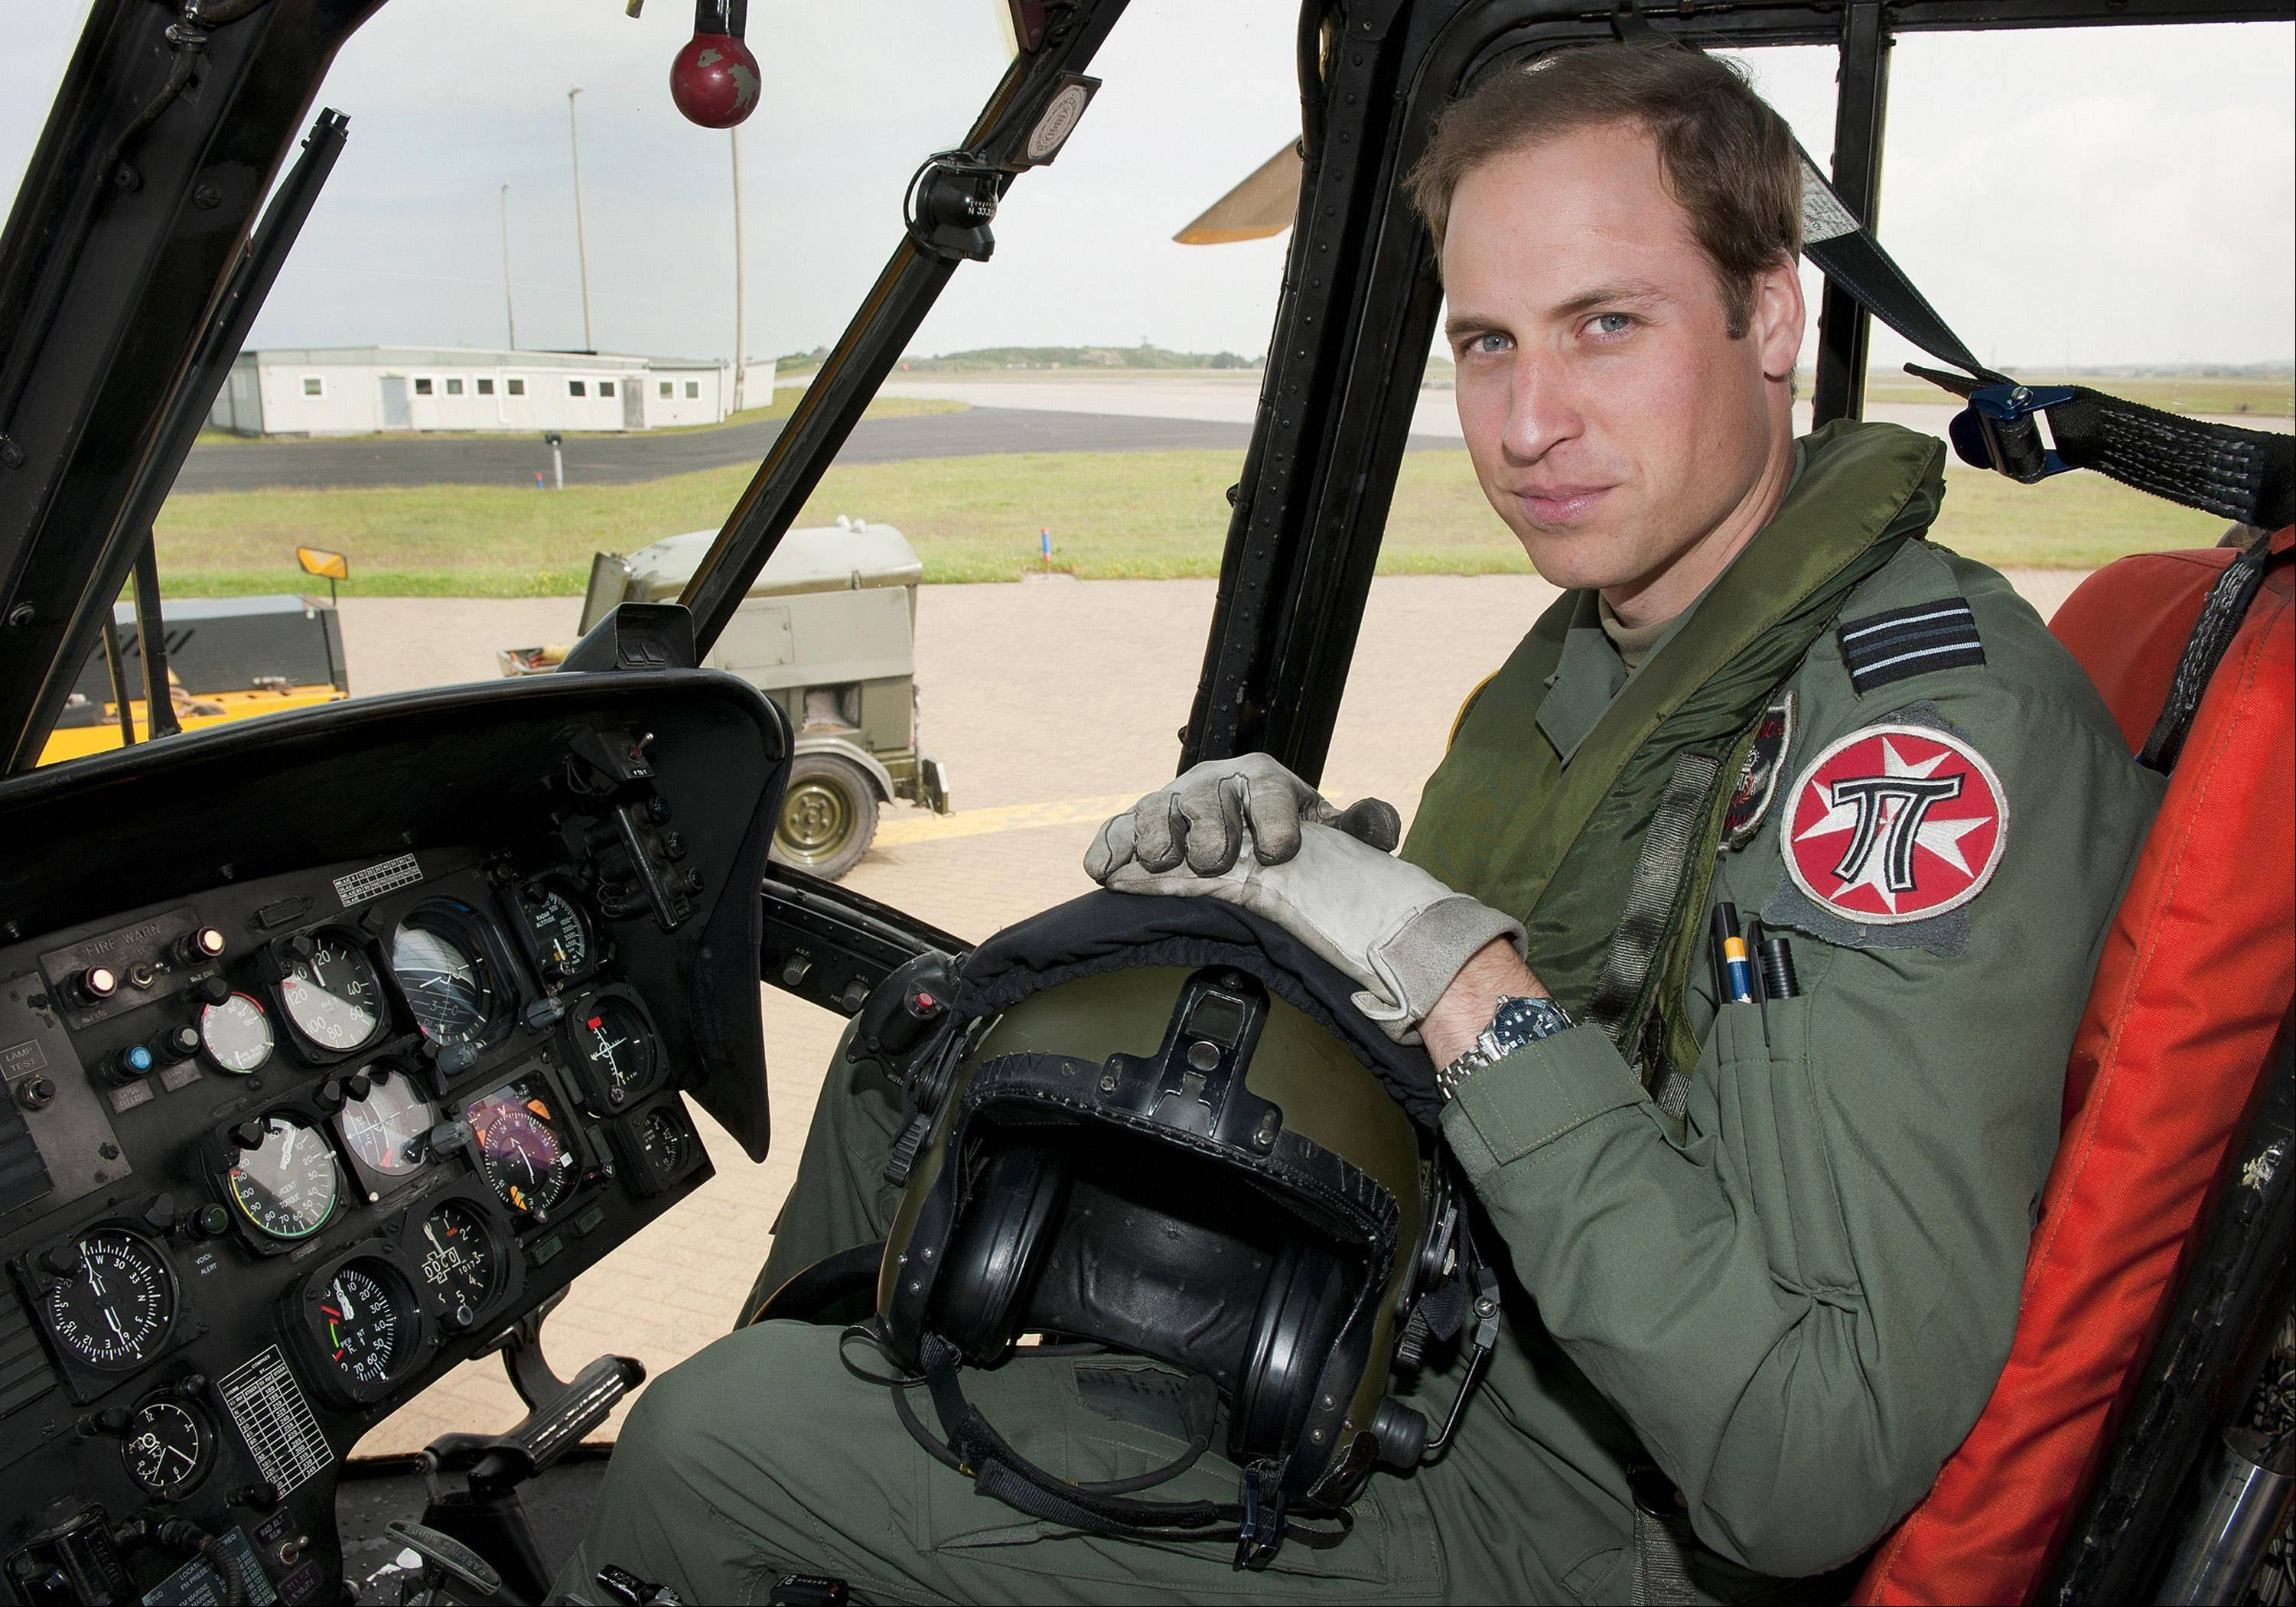 Britain�s Prince William has finished his tour of duty as a Royal Air Force search-and-rescue helicopter pilot and has left operational service with the British military to focus on royal duties and charity work, royal officials said Thursday, Sept 12, 2013.